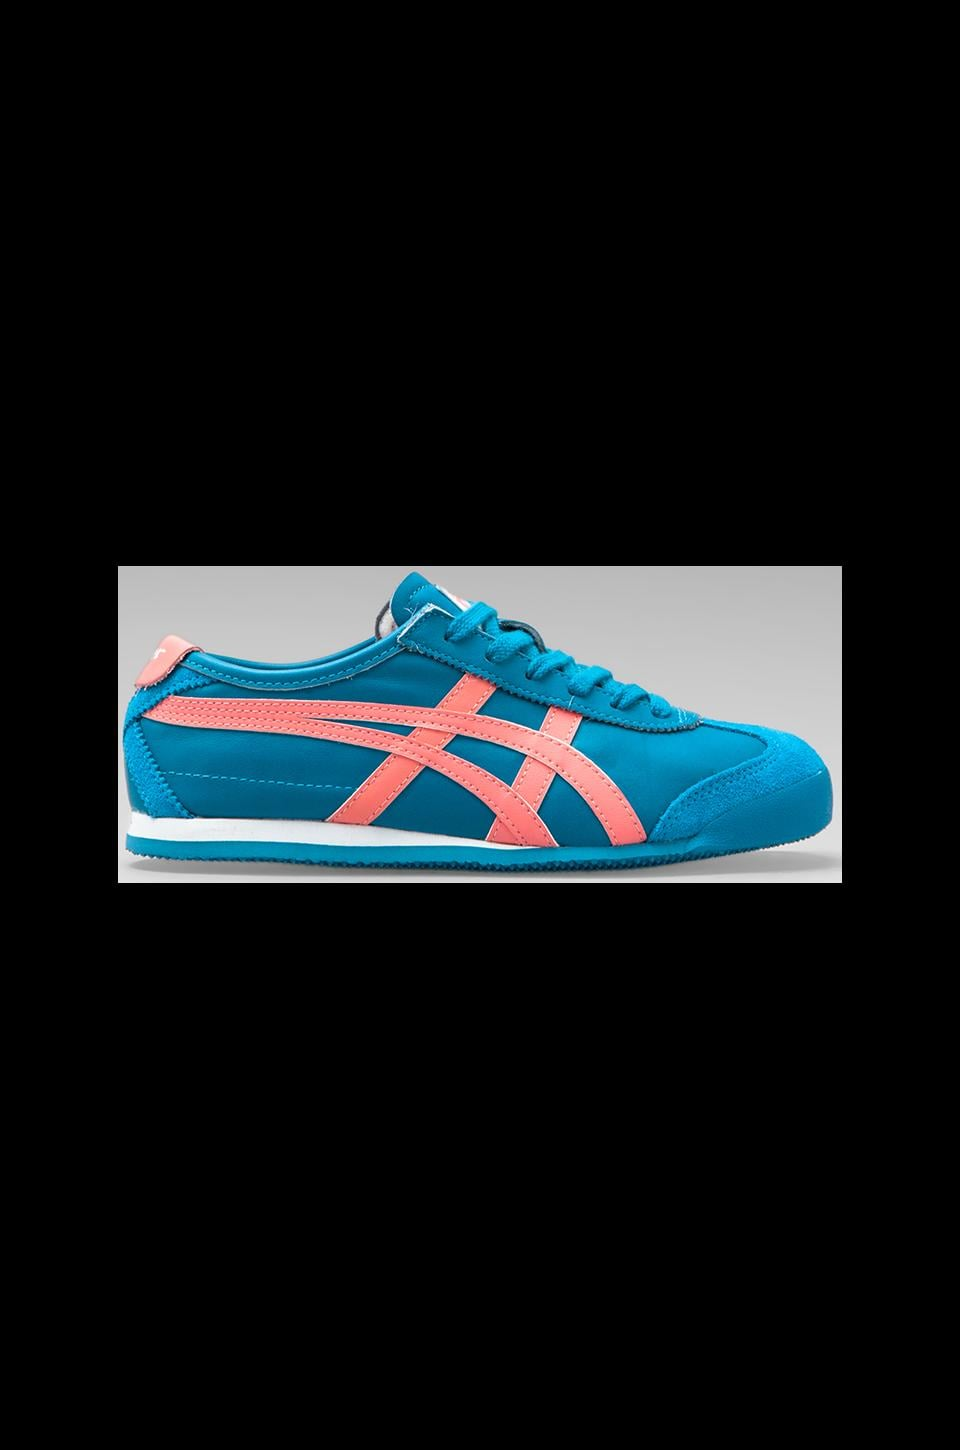 Onitsuka Tiger Mexico 66 in Blue/Coral